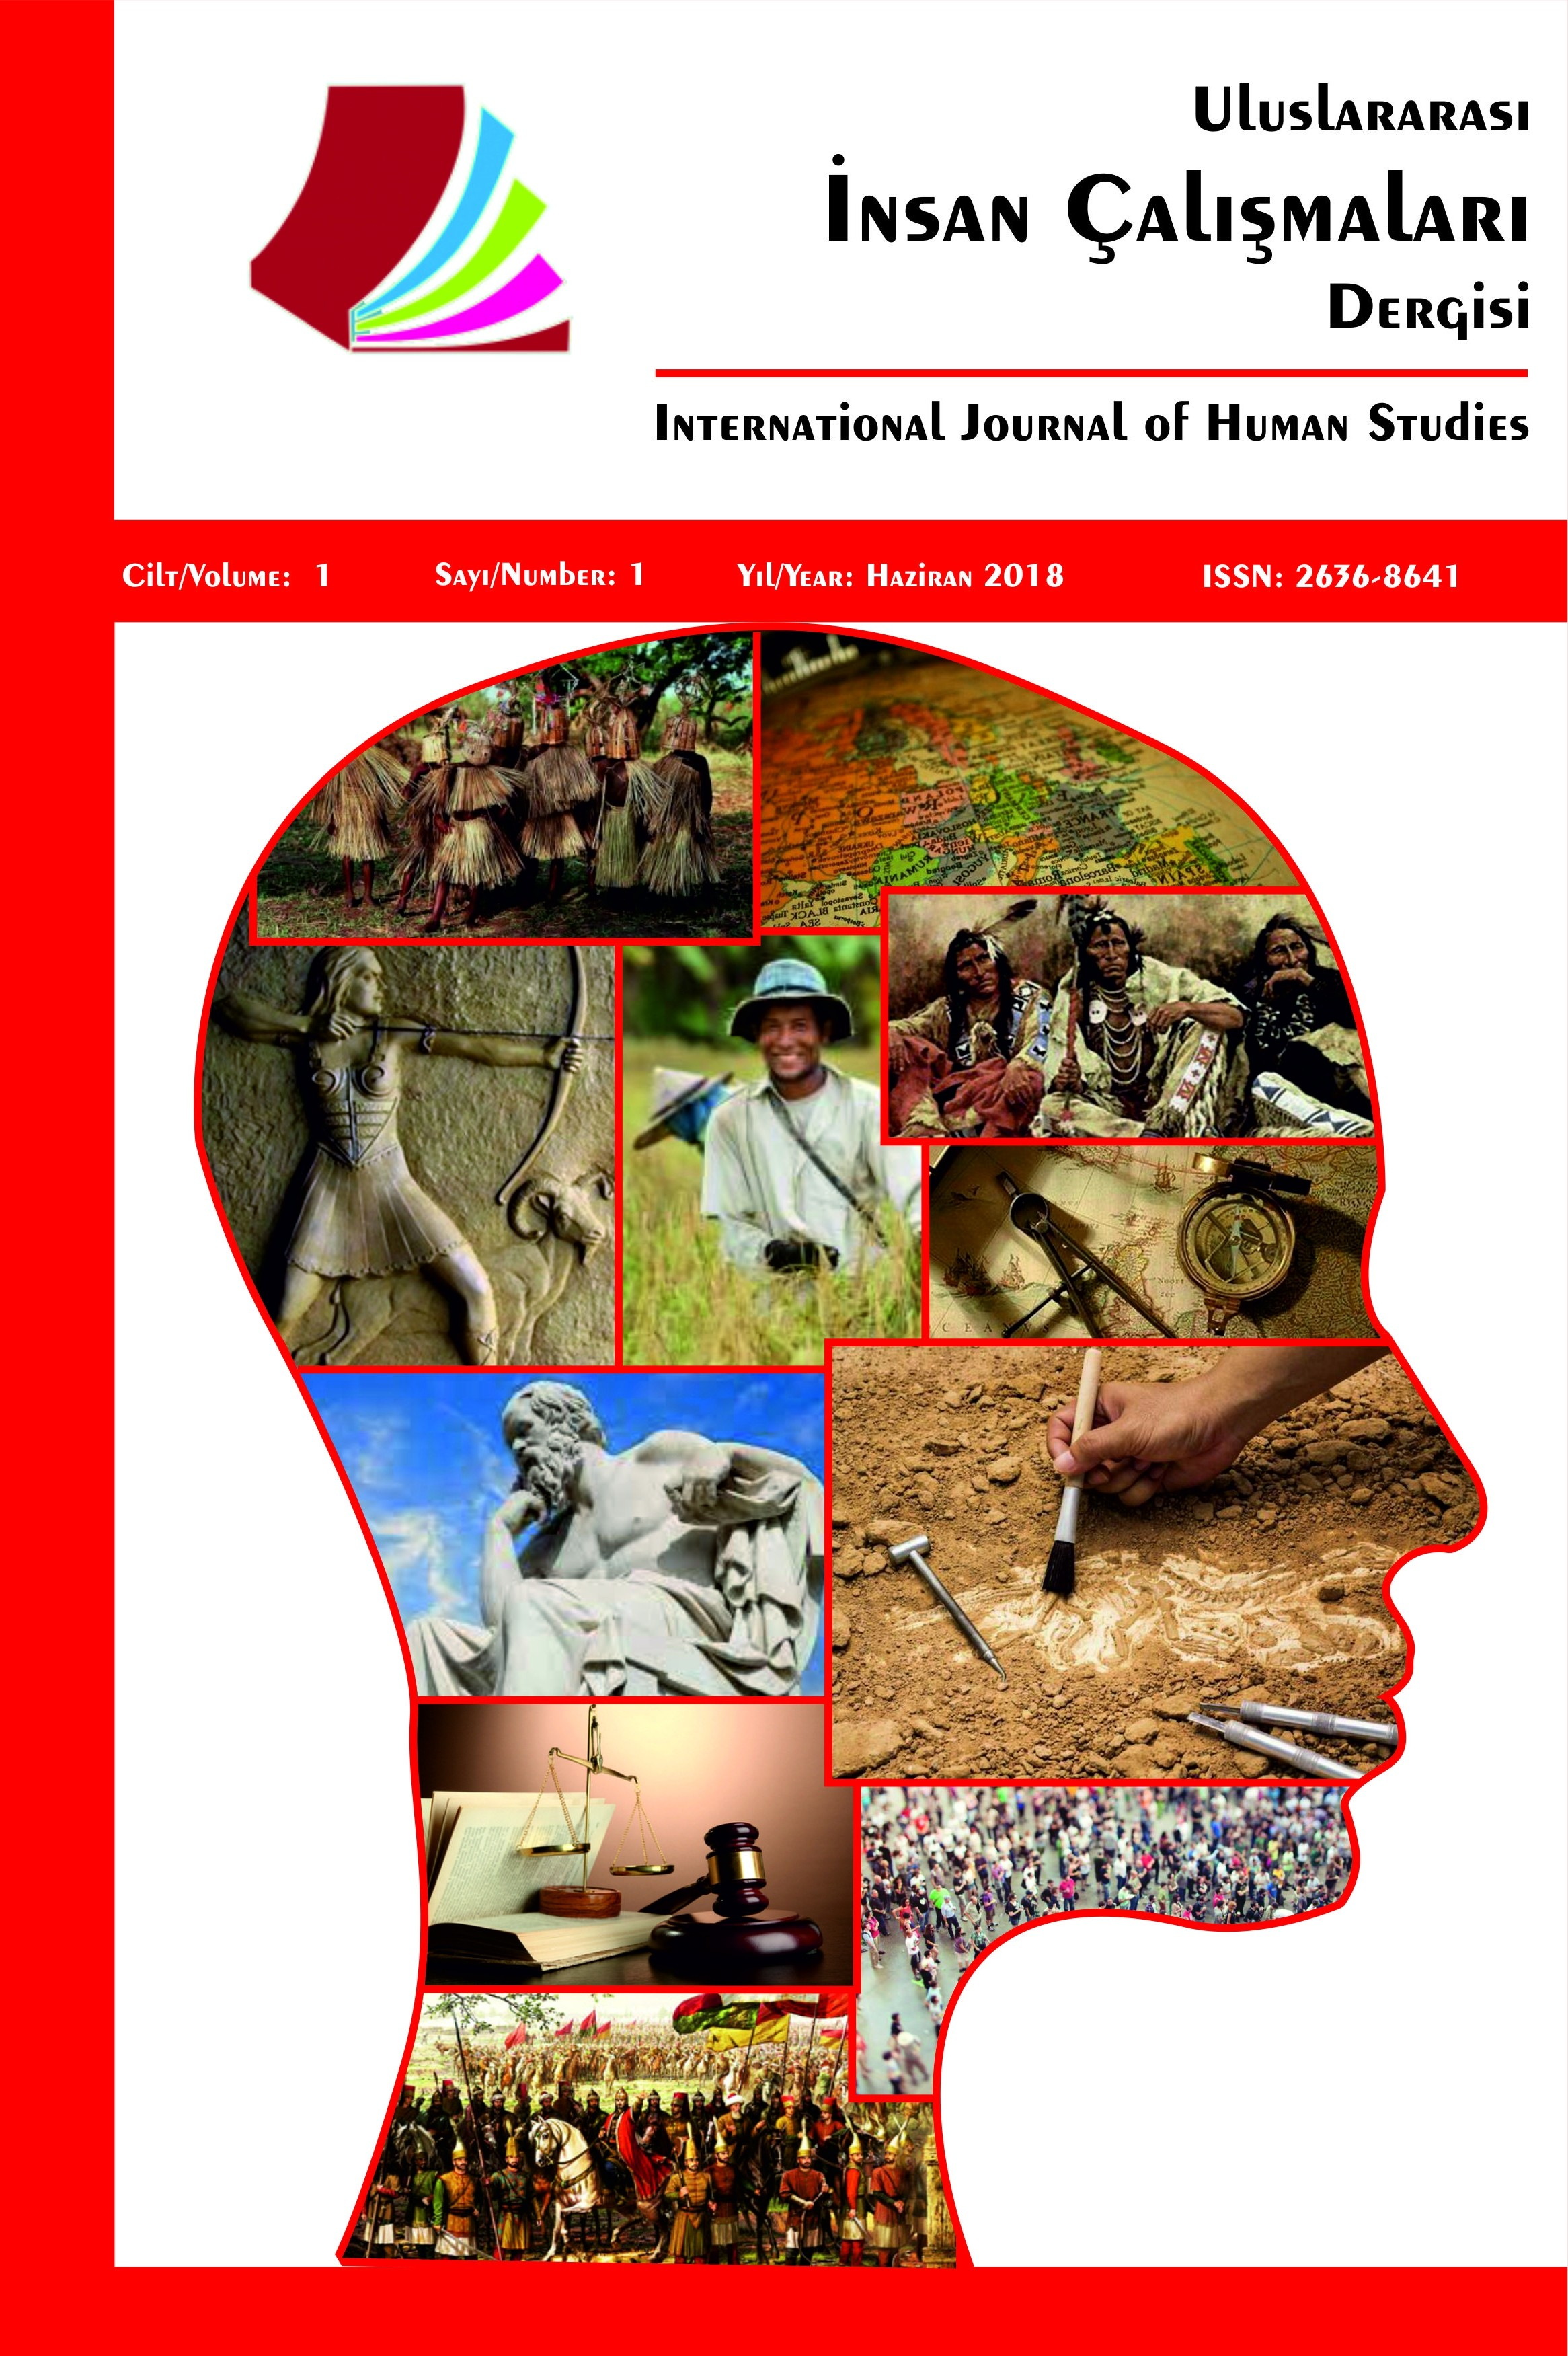 International Journal of Human Studies